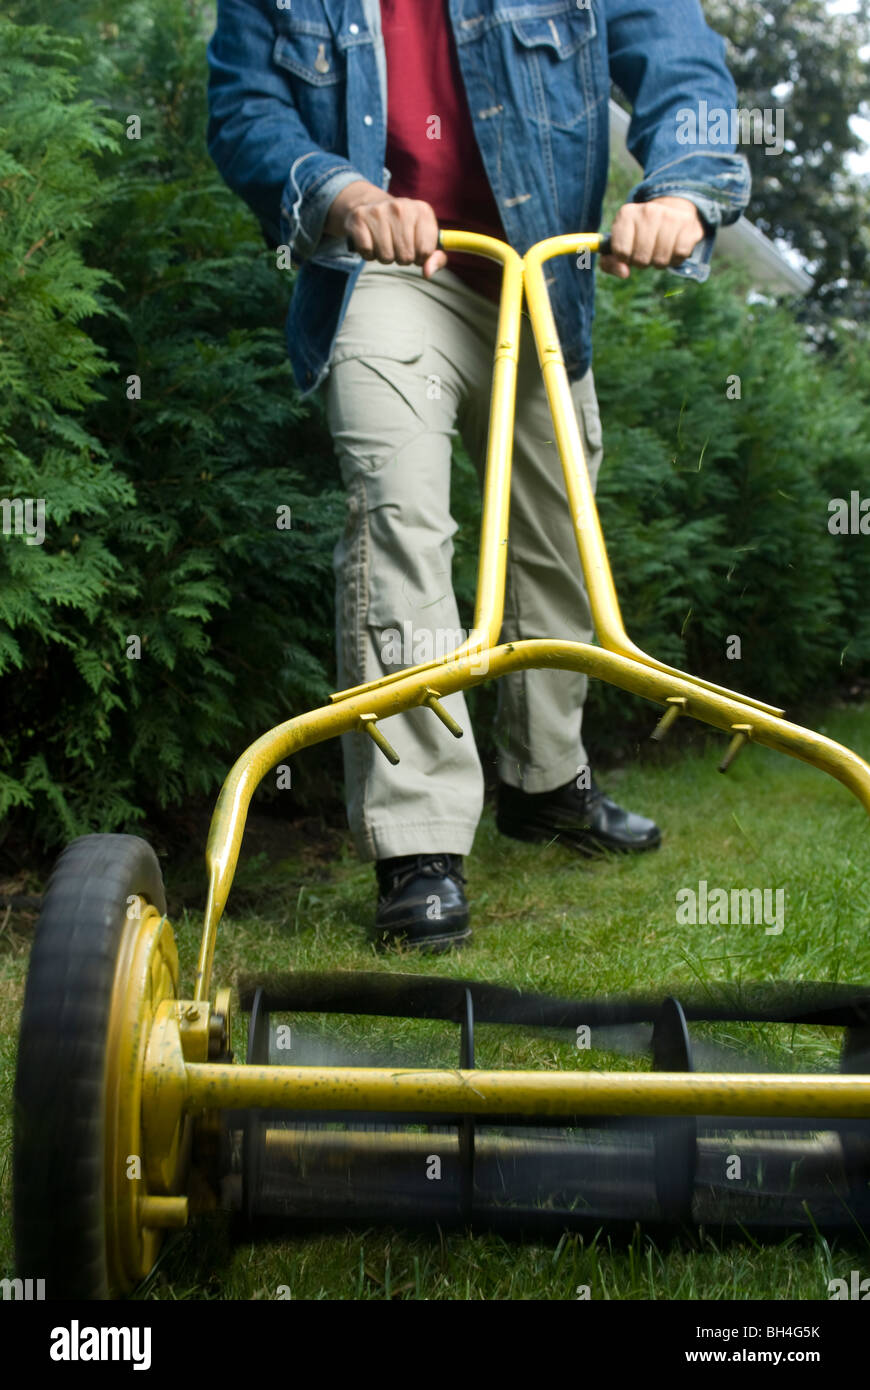 Man mowing lawn with eco-friendly push mower, Montreal, Quebec - Stock Image